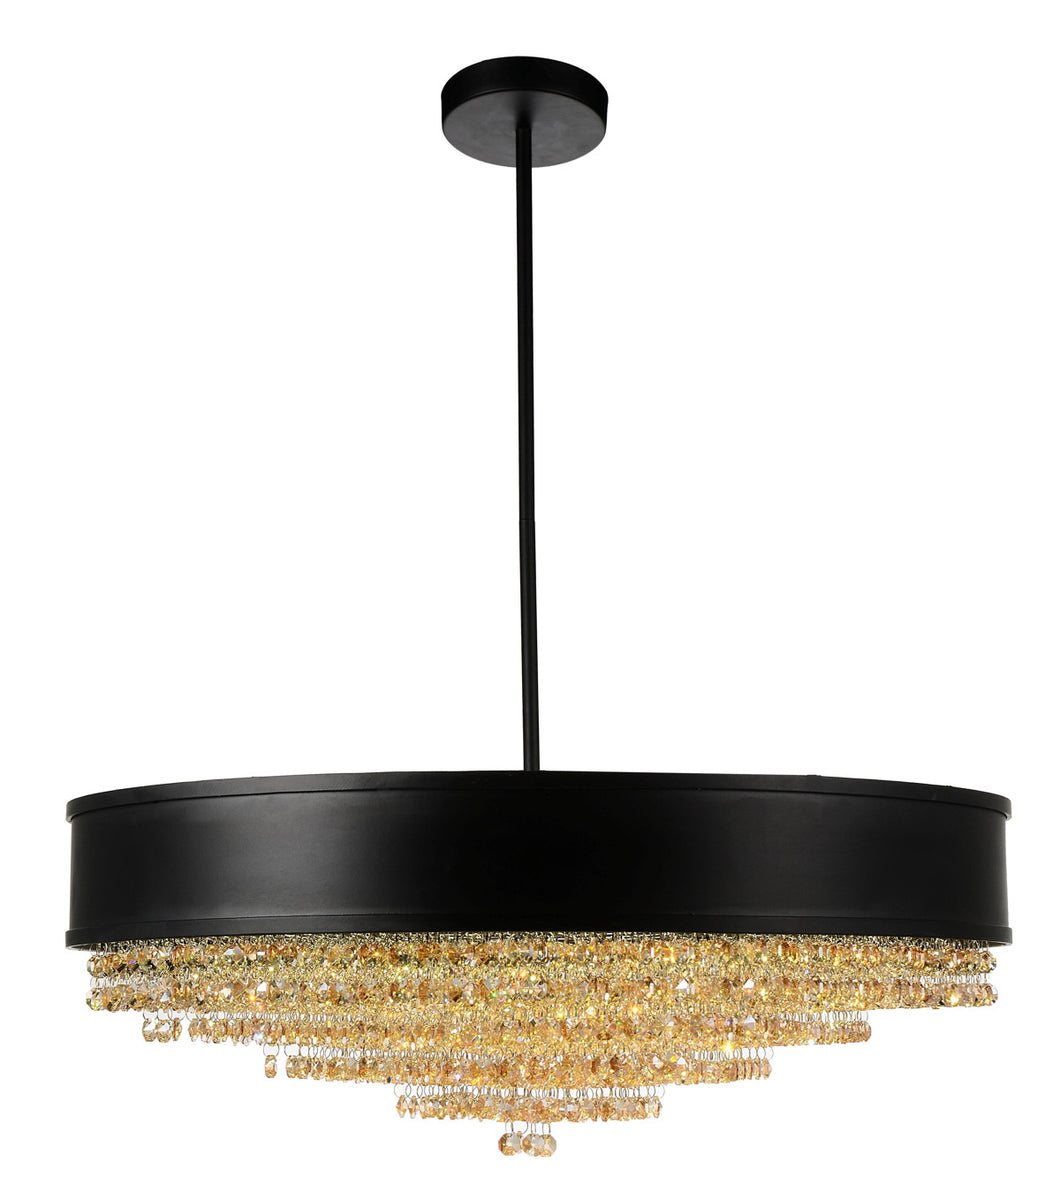 10 Light Drum Shade Chandelier with Black finish